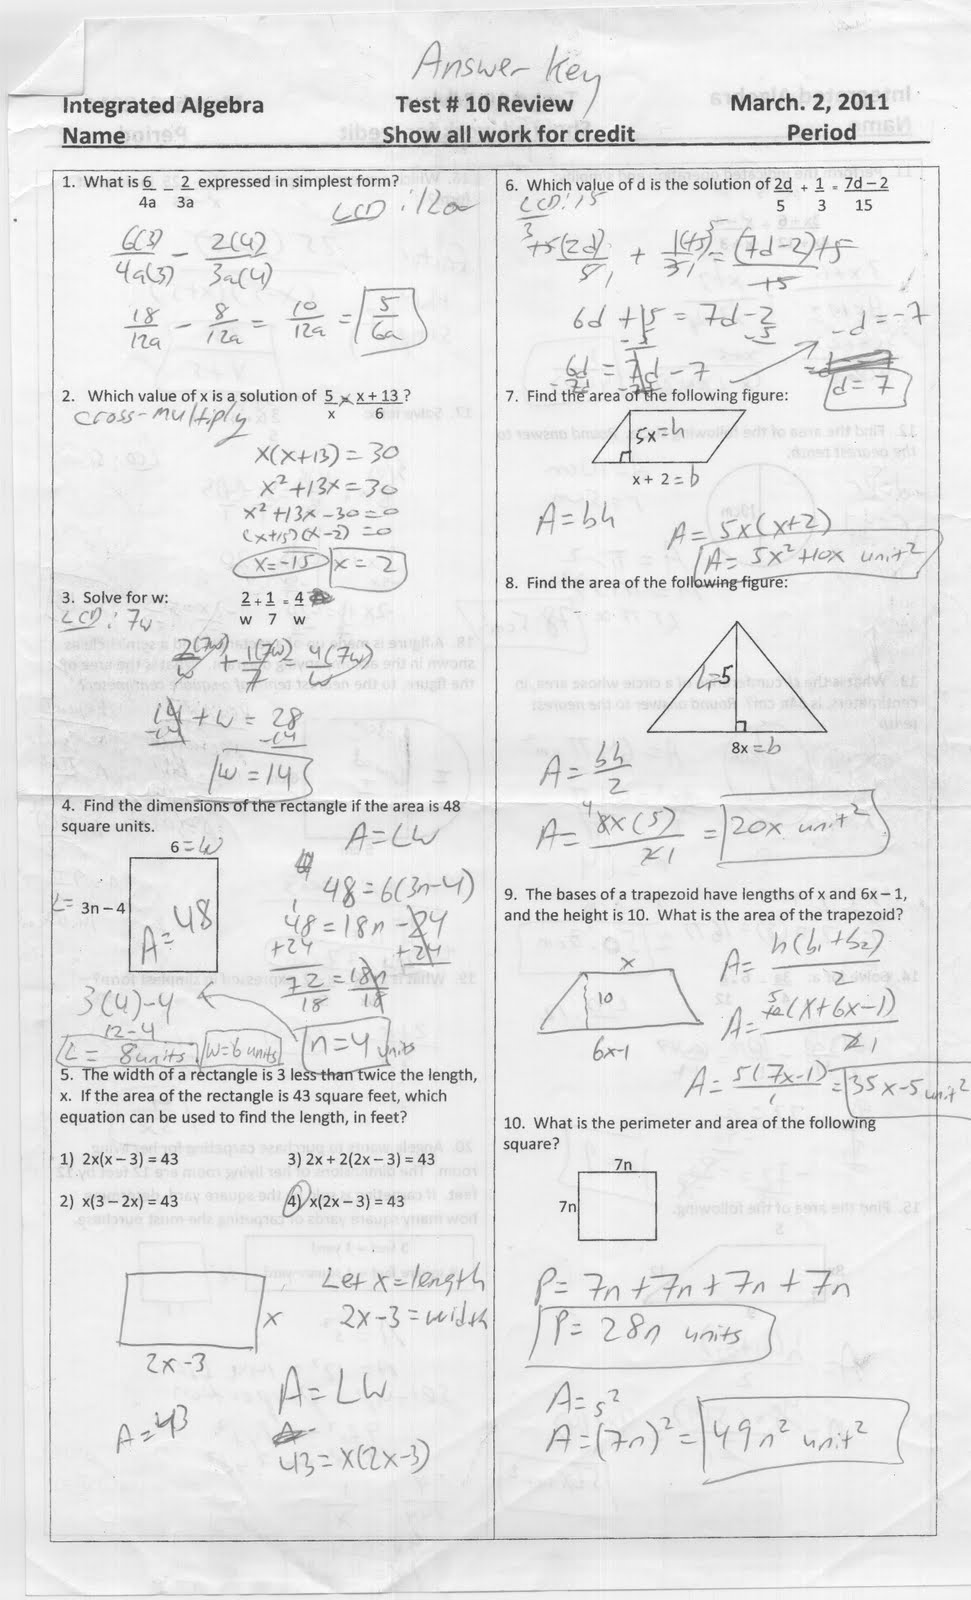 Mr. Napoli's Algebra: Aim: Test 10 Review